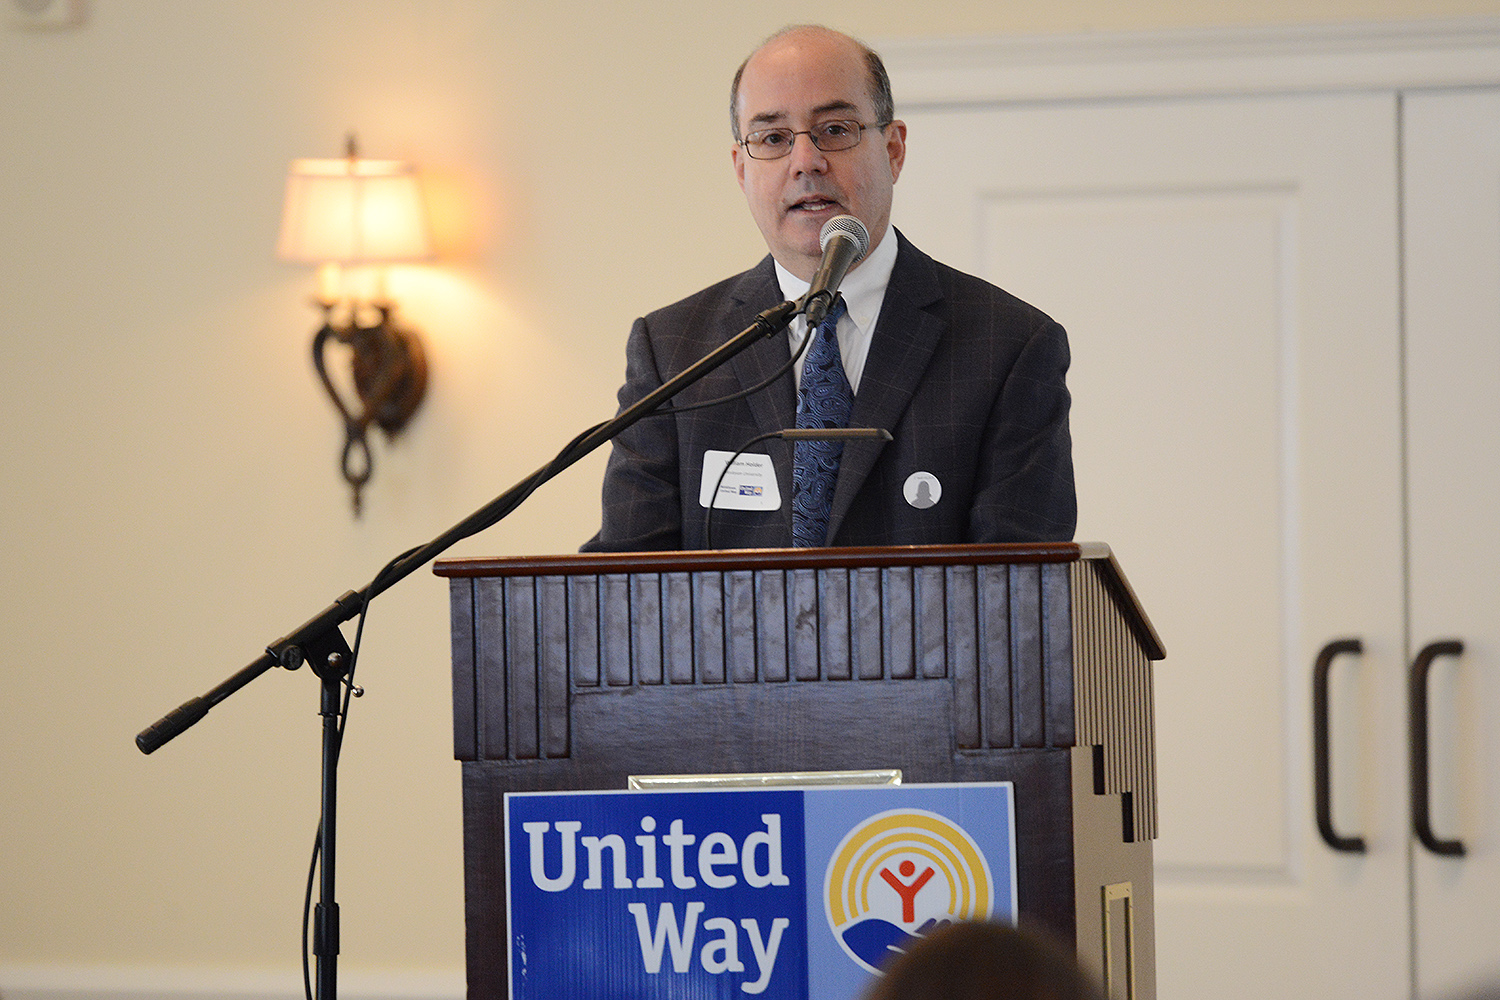 Bill Holder, director of university communications and president of the Middlesex United Way, led the annual meeting at the Riverhouse at Goodspeed Station in Haddam, Conn. Wesleyan has a long history of employees giving to the United Way. Since 2001, employees have donated $1.7 million to the cause.